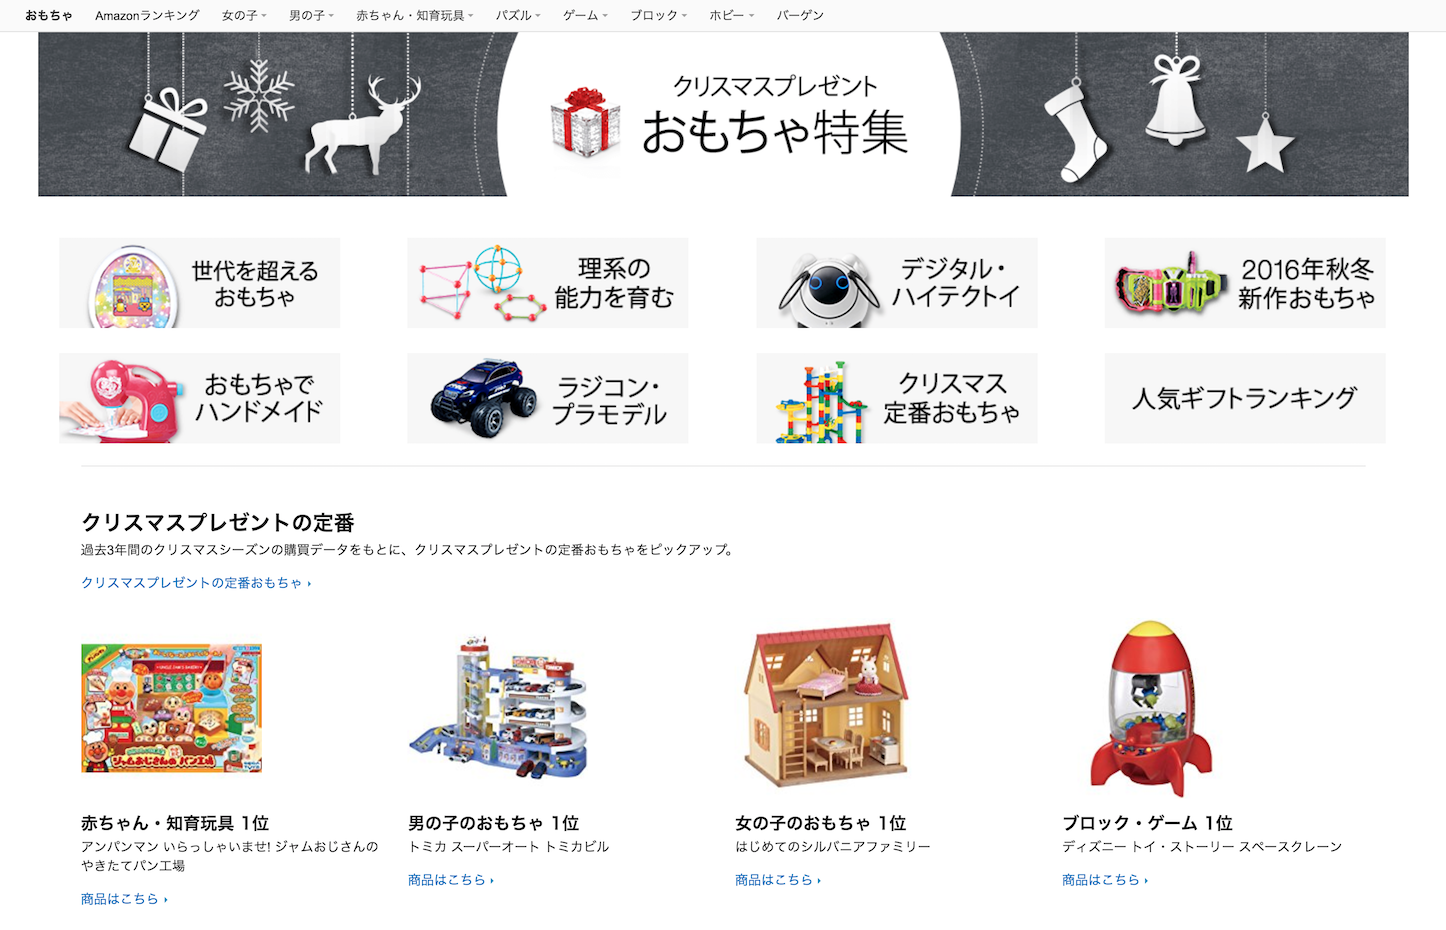 Amazon Toy Page